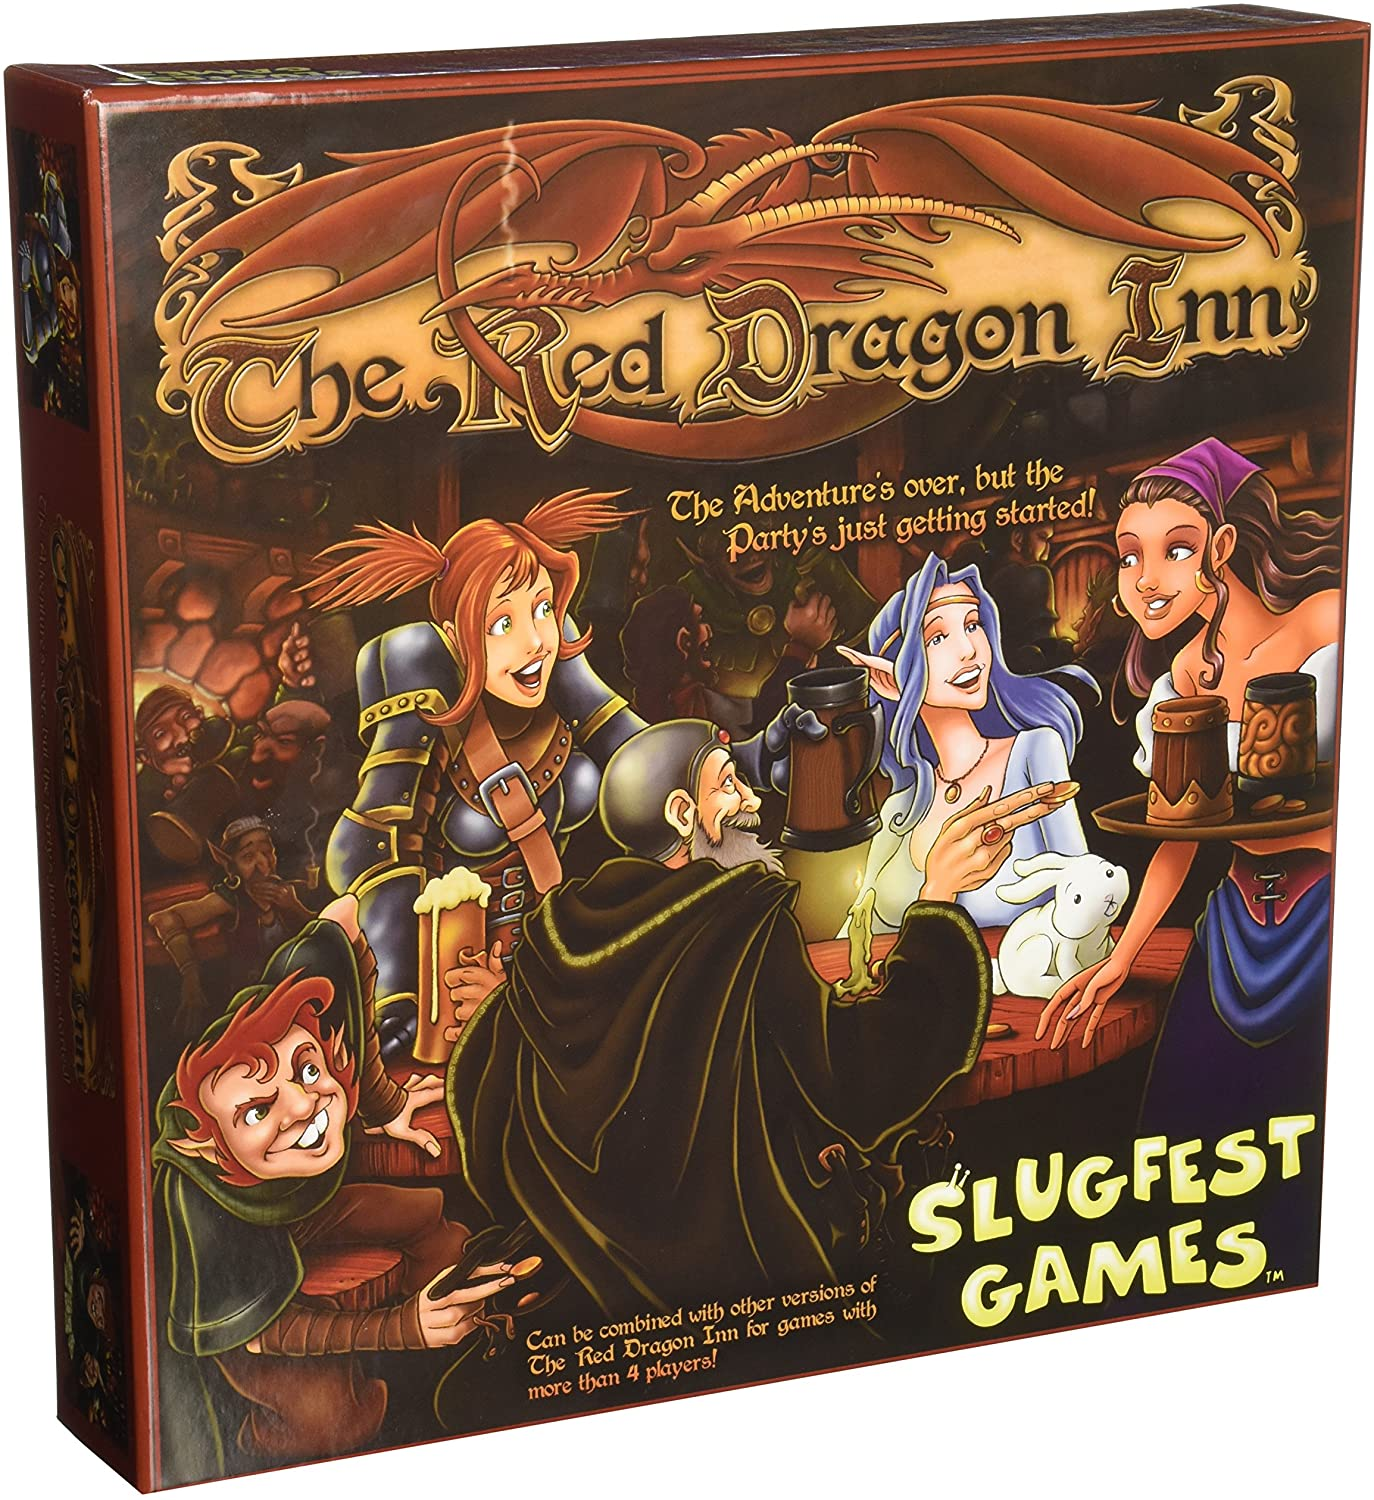 Red Dragon Inn Game Alliance Games Board Games